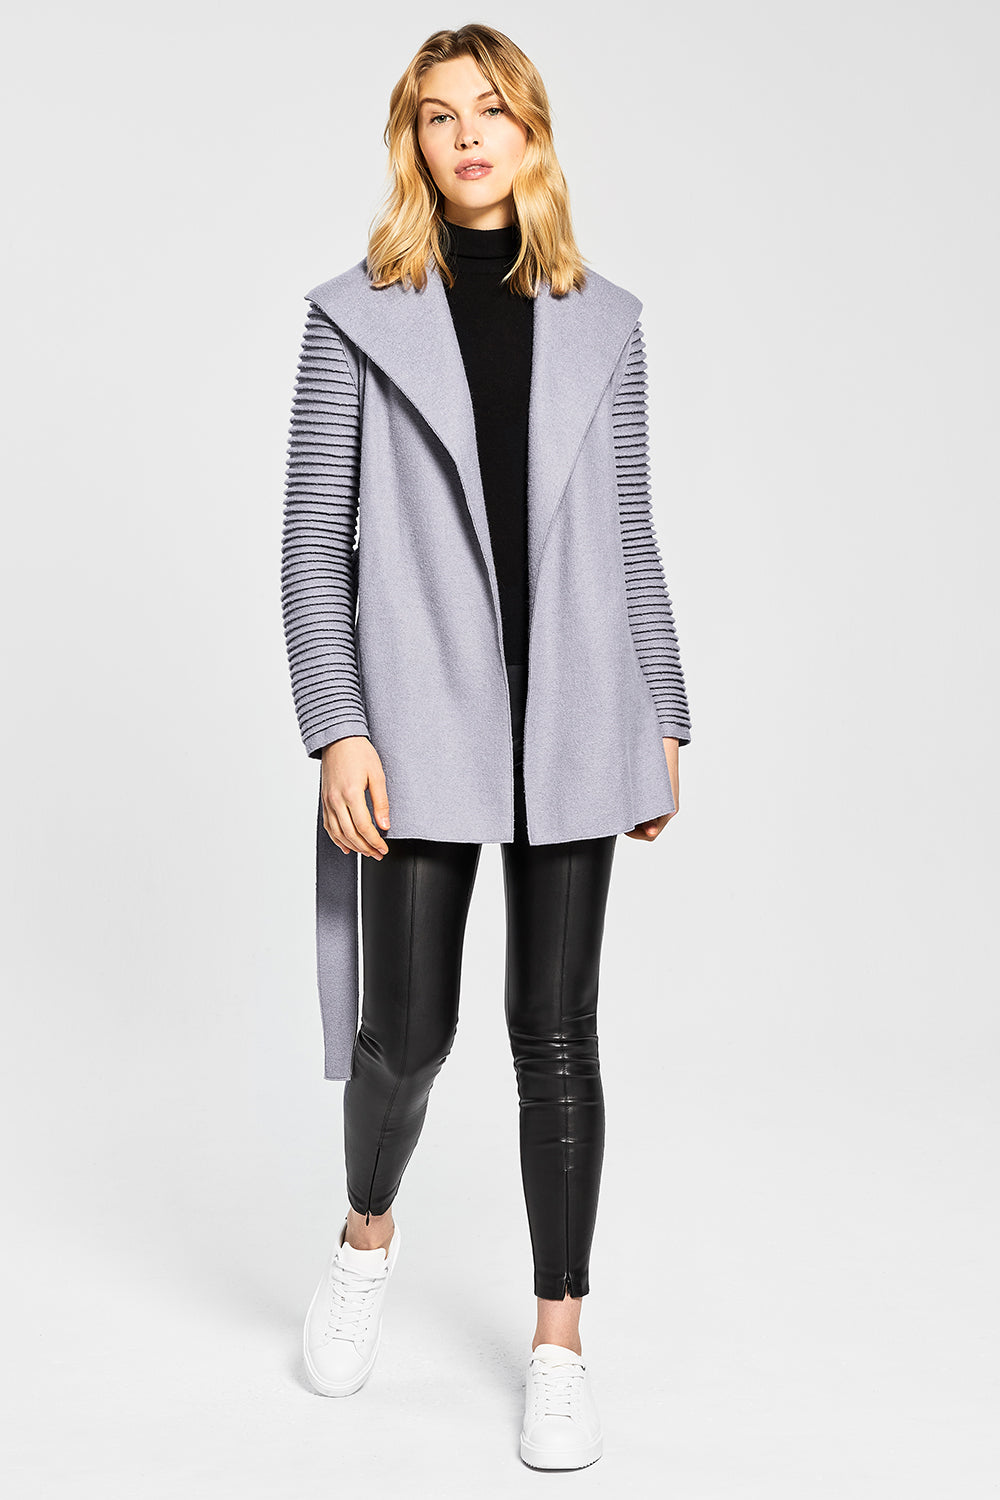 Sentaler Wrap Coat with Ribbed Sleeves featured in Superfine Alpaca and available in Gull Grey. Seen open.